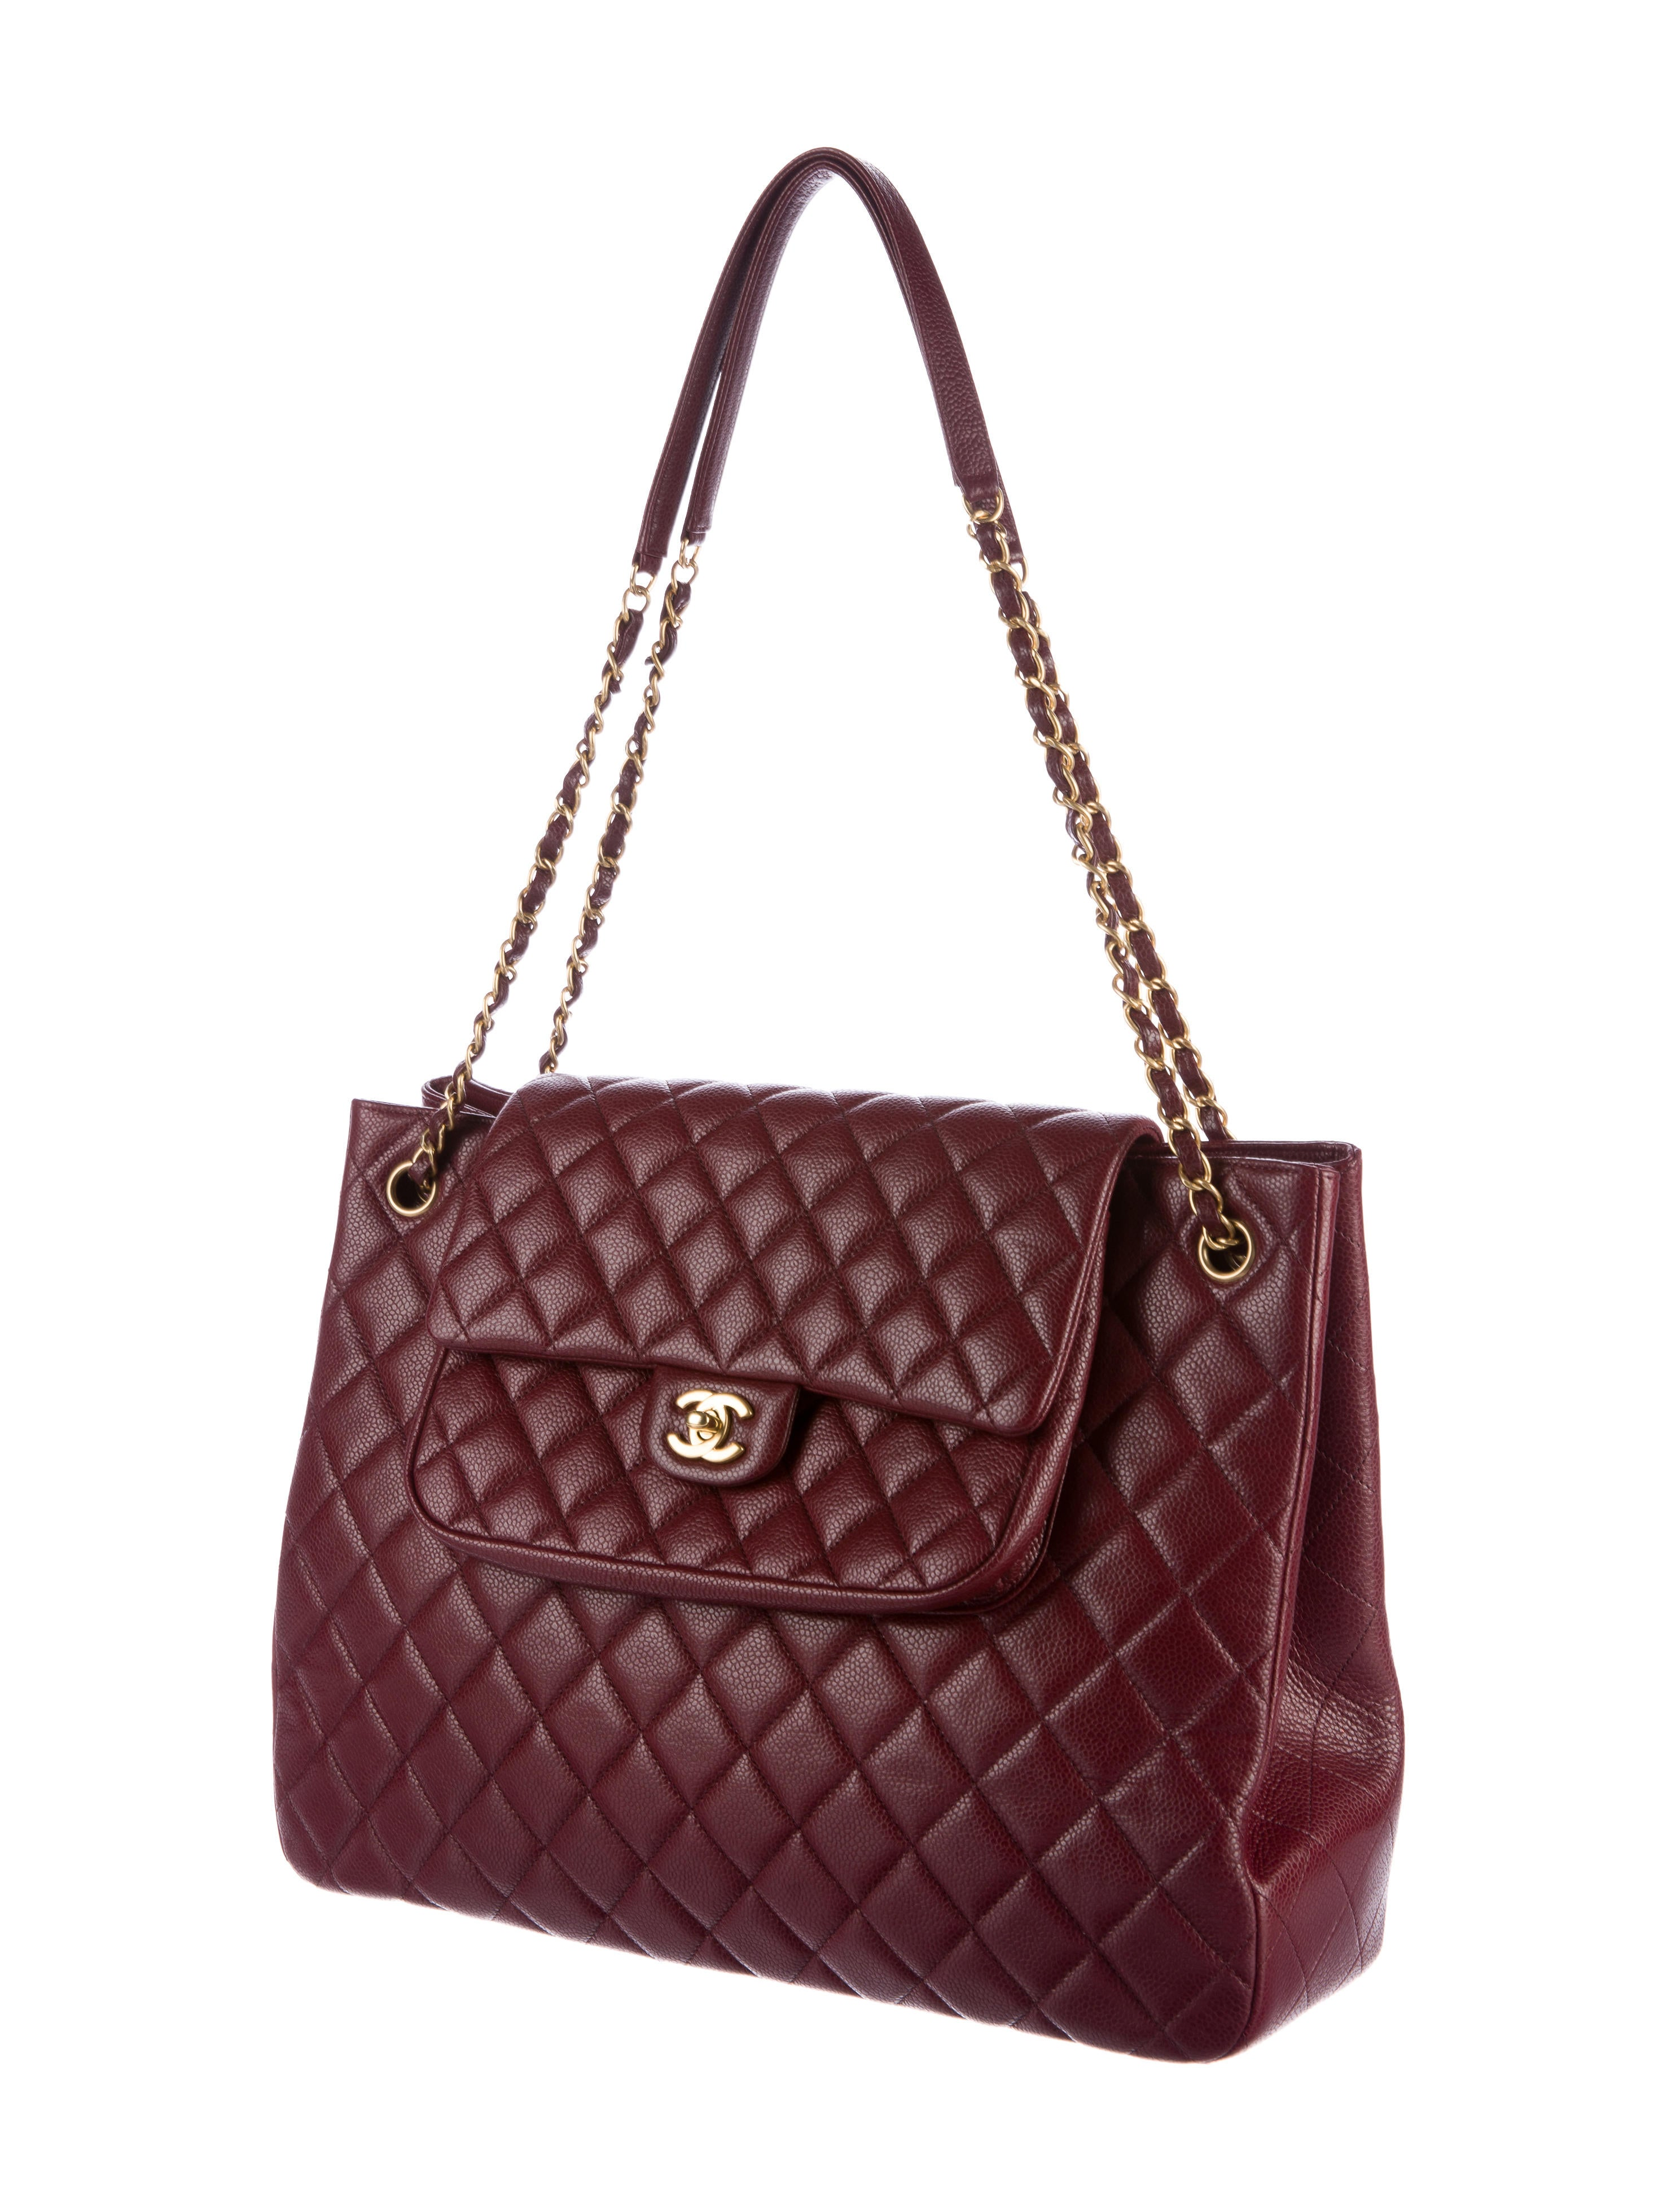 107fb22de0c8 Chanel Large Flap Tote | Stanford Center for Opportunity Policy in ...